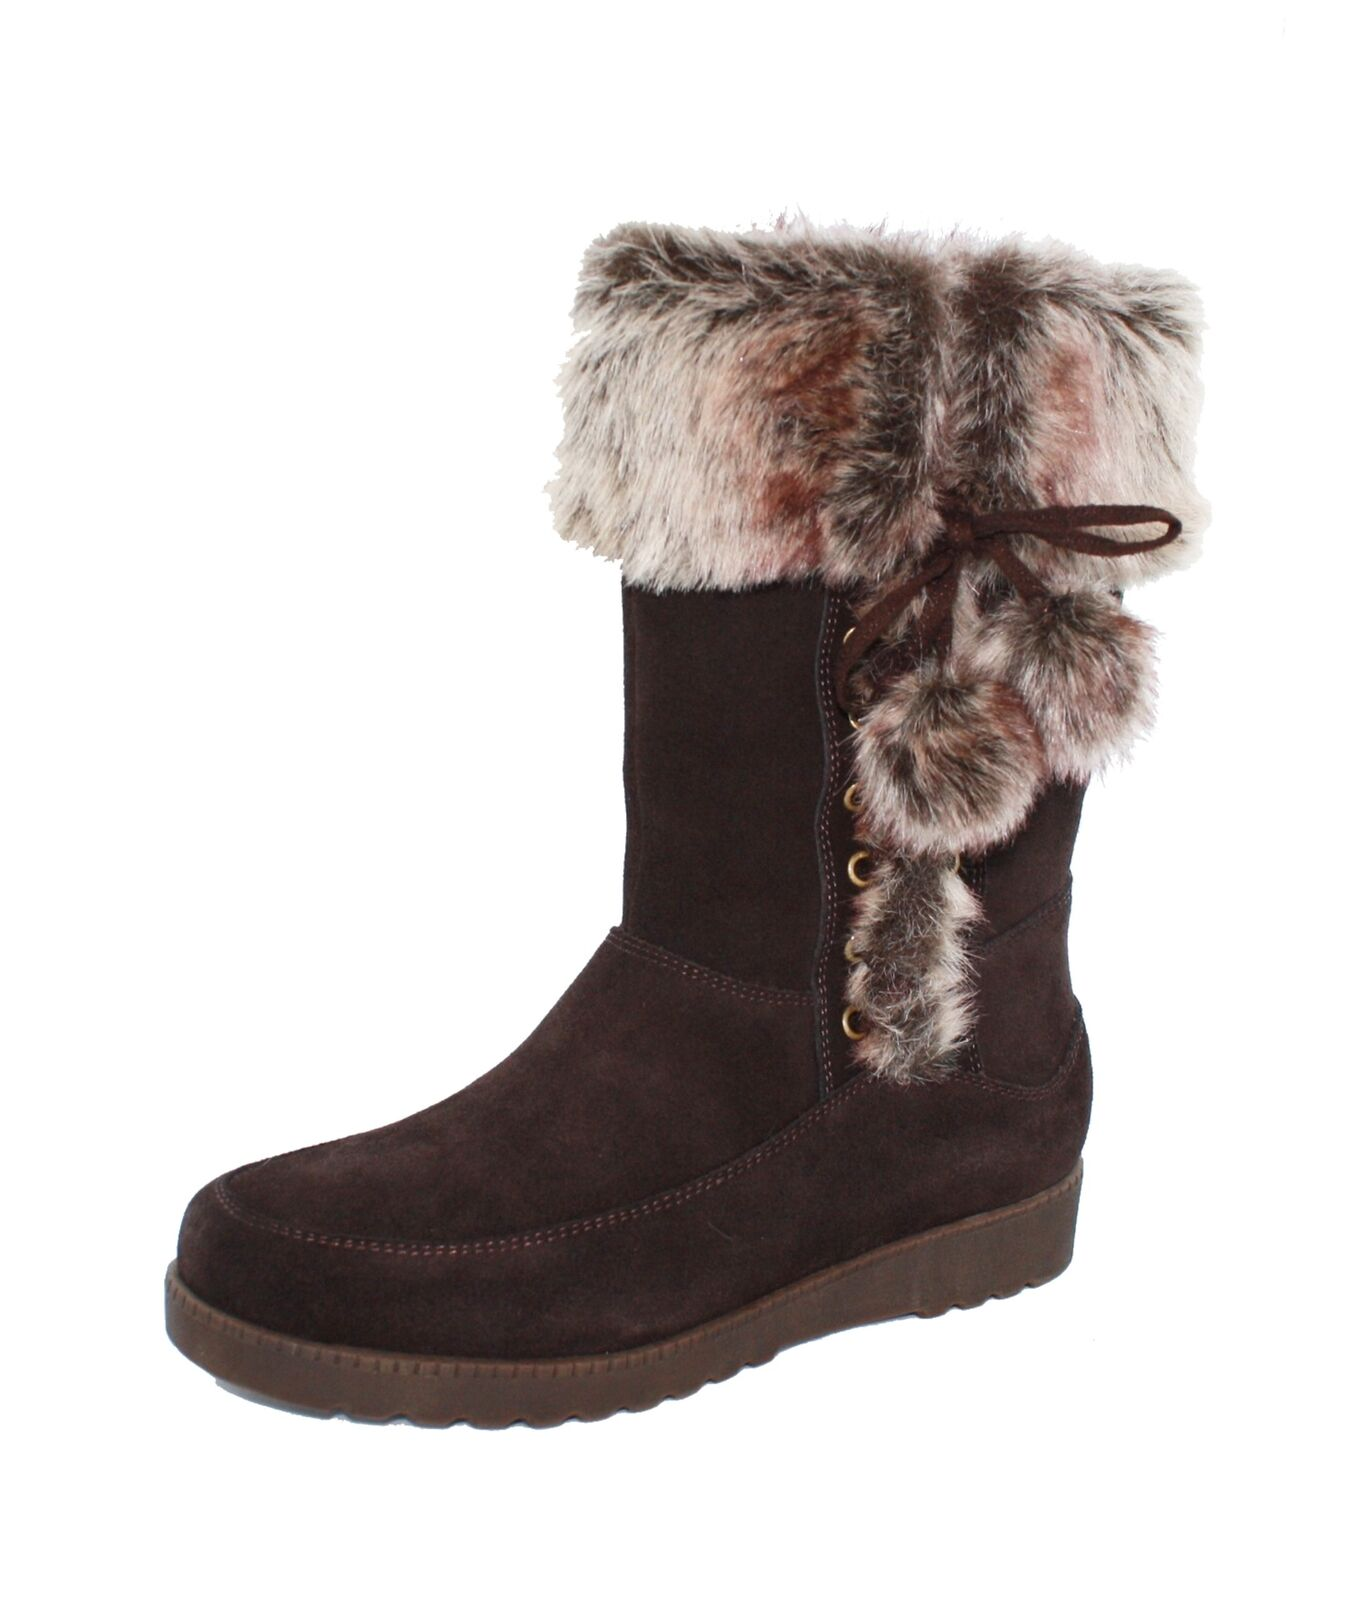 WHITE MOUNTAIN Forest' Women's Boot Brown 9.5 B(M) US